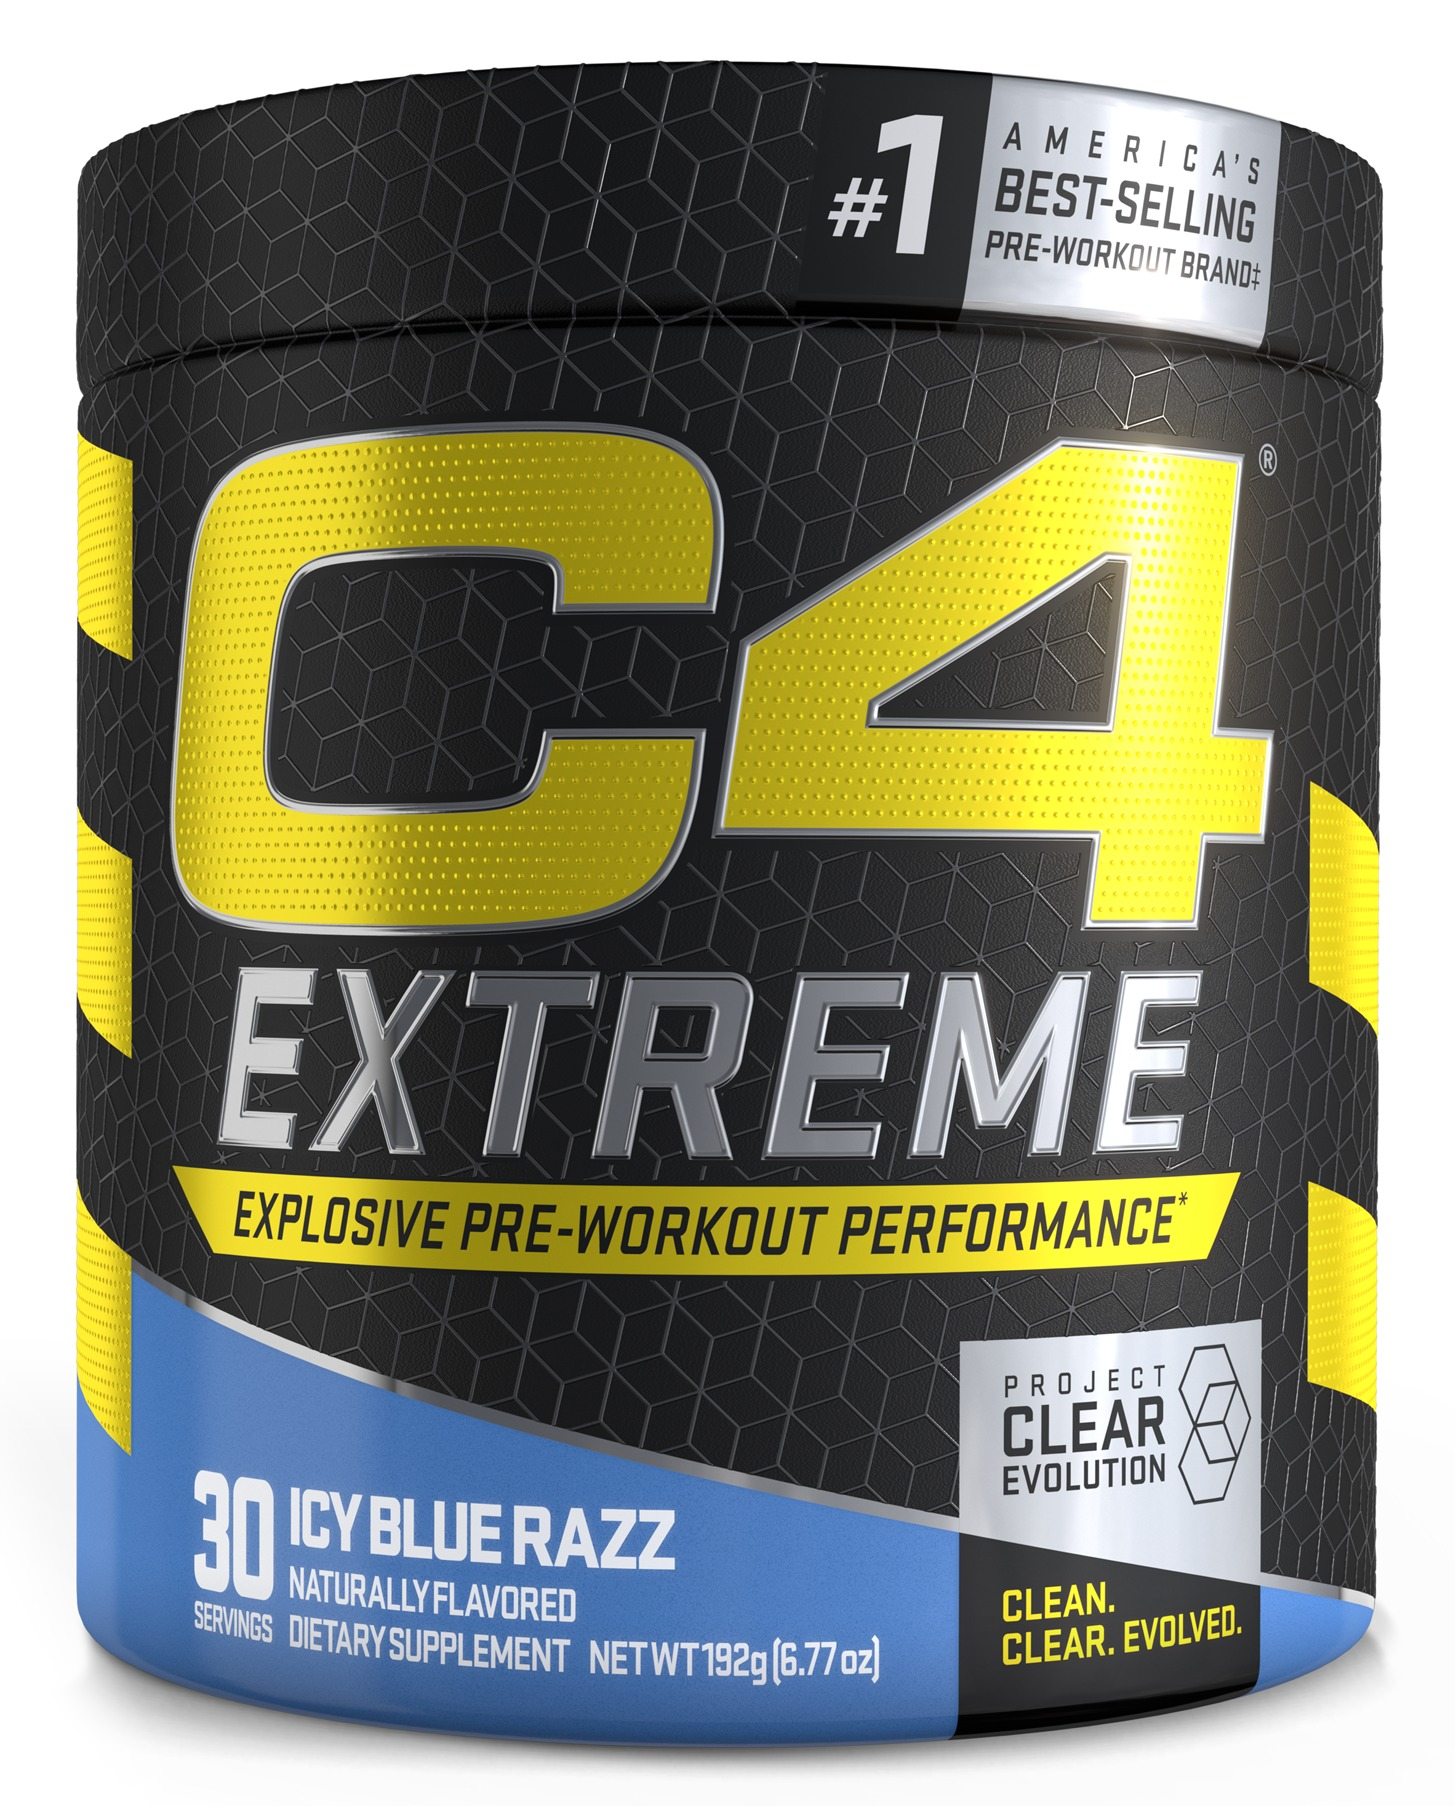 Cellucor C4 Extreme Returns Double Nitrates Natural Options Analyzed